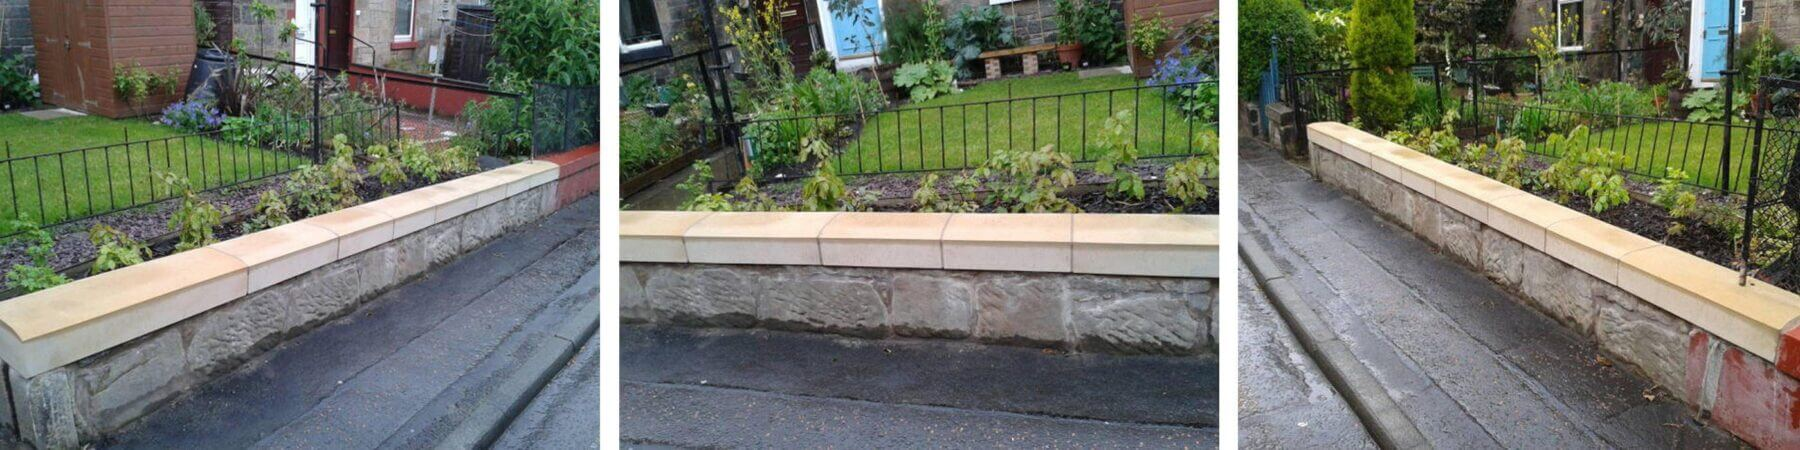 Wall Repairs Stonemasons East Lothian - Repair Of Sandstone Coping Stones - stonemasons east lothian